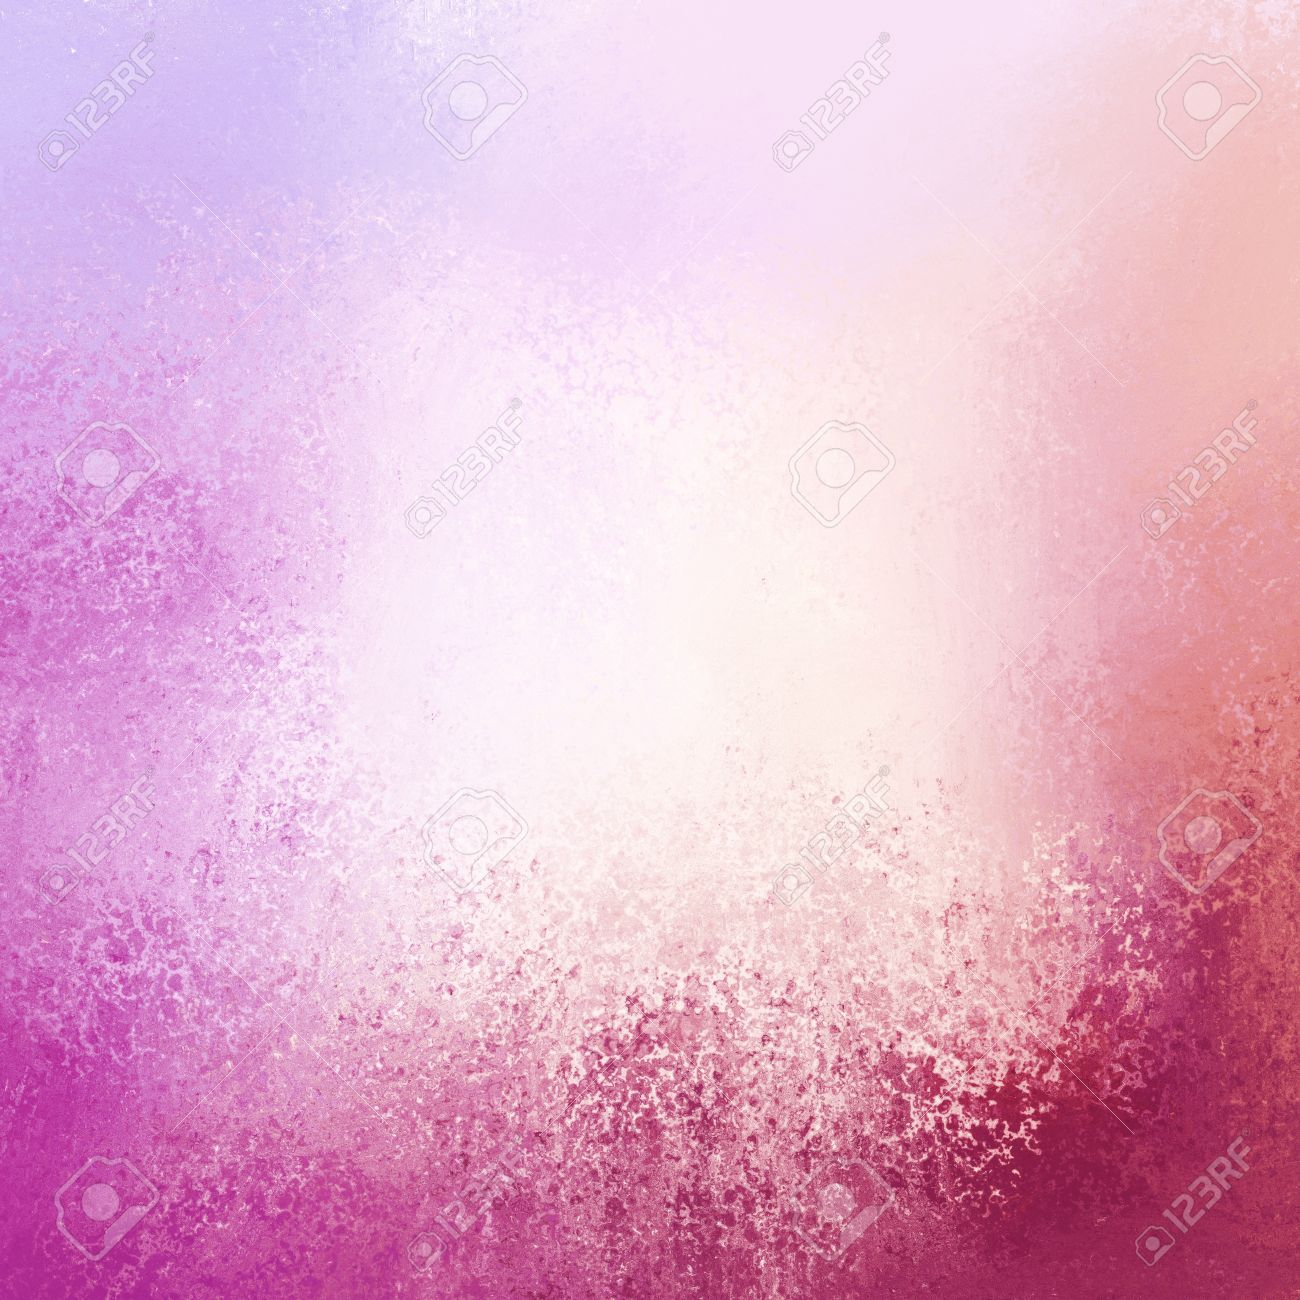 pretty pink background with purple grunge border and white center Stock Photo - 47207822